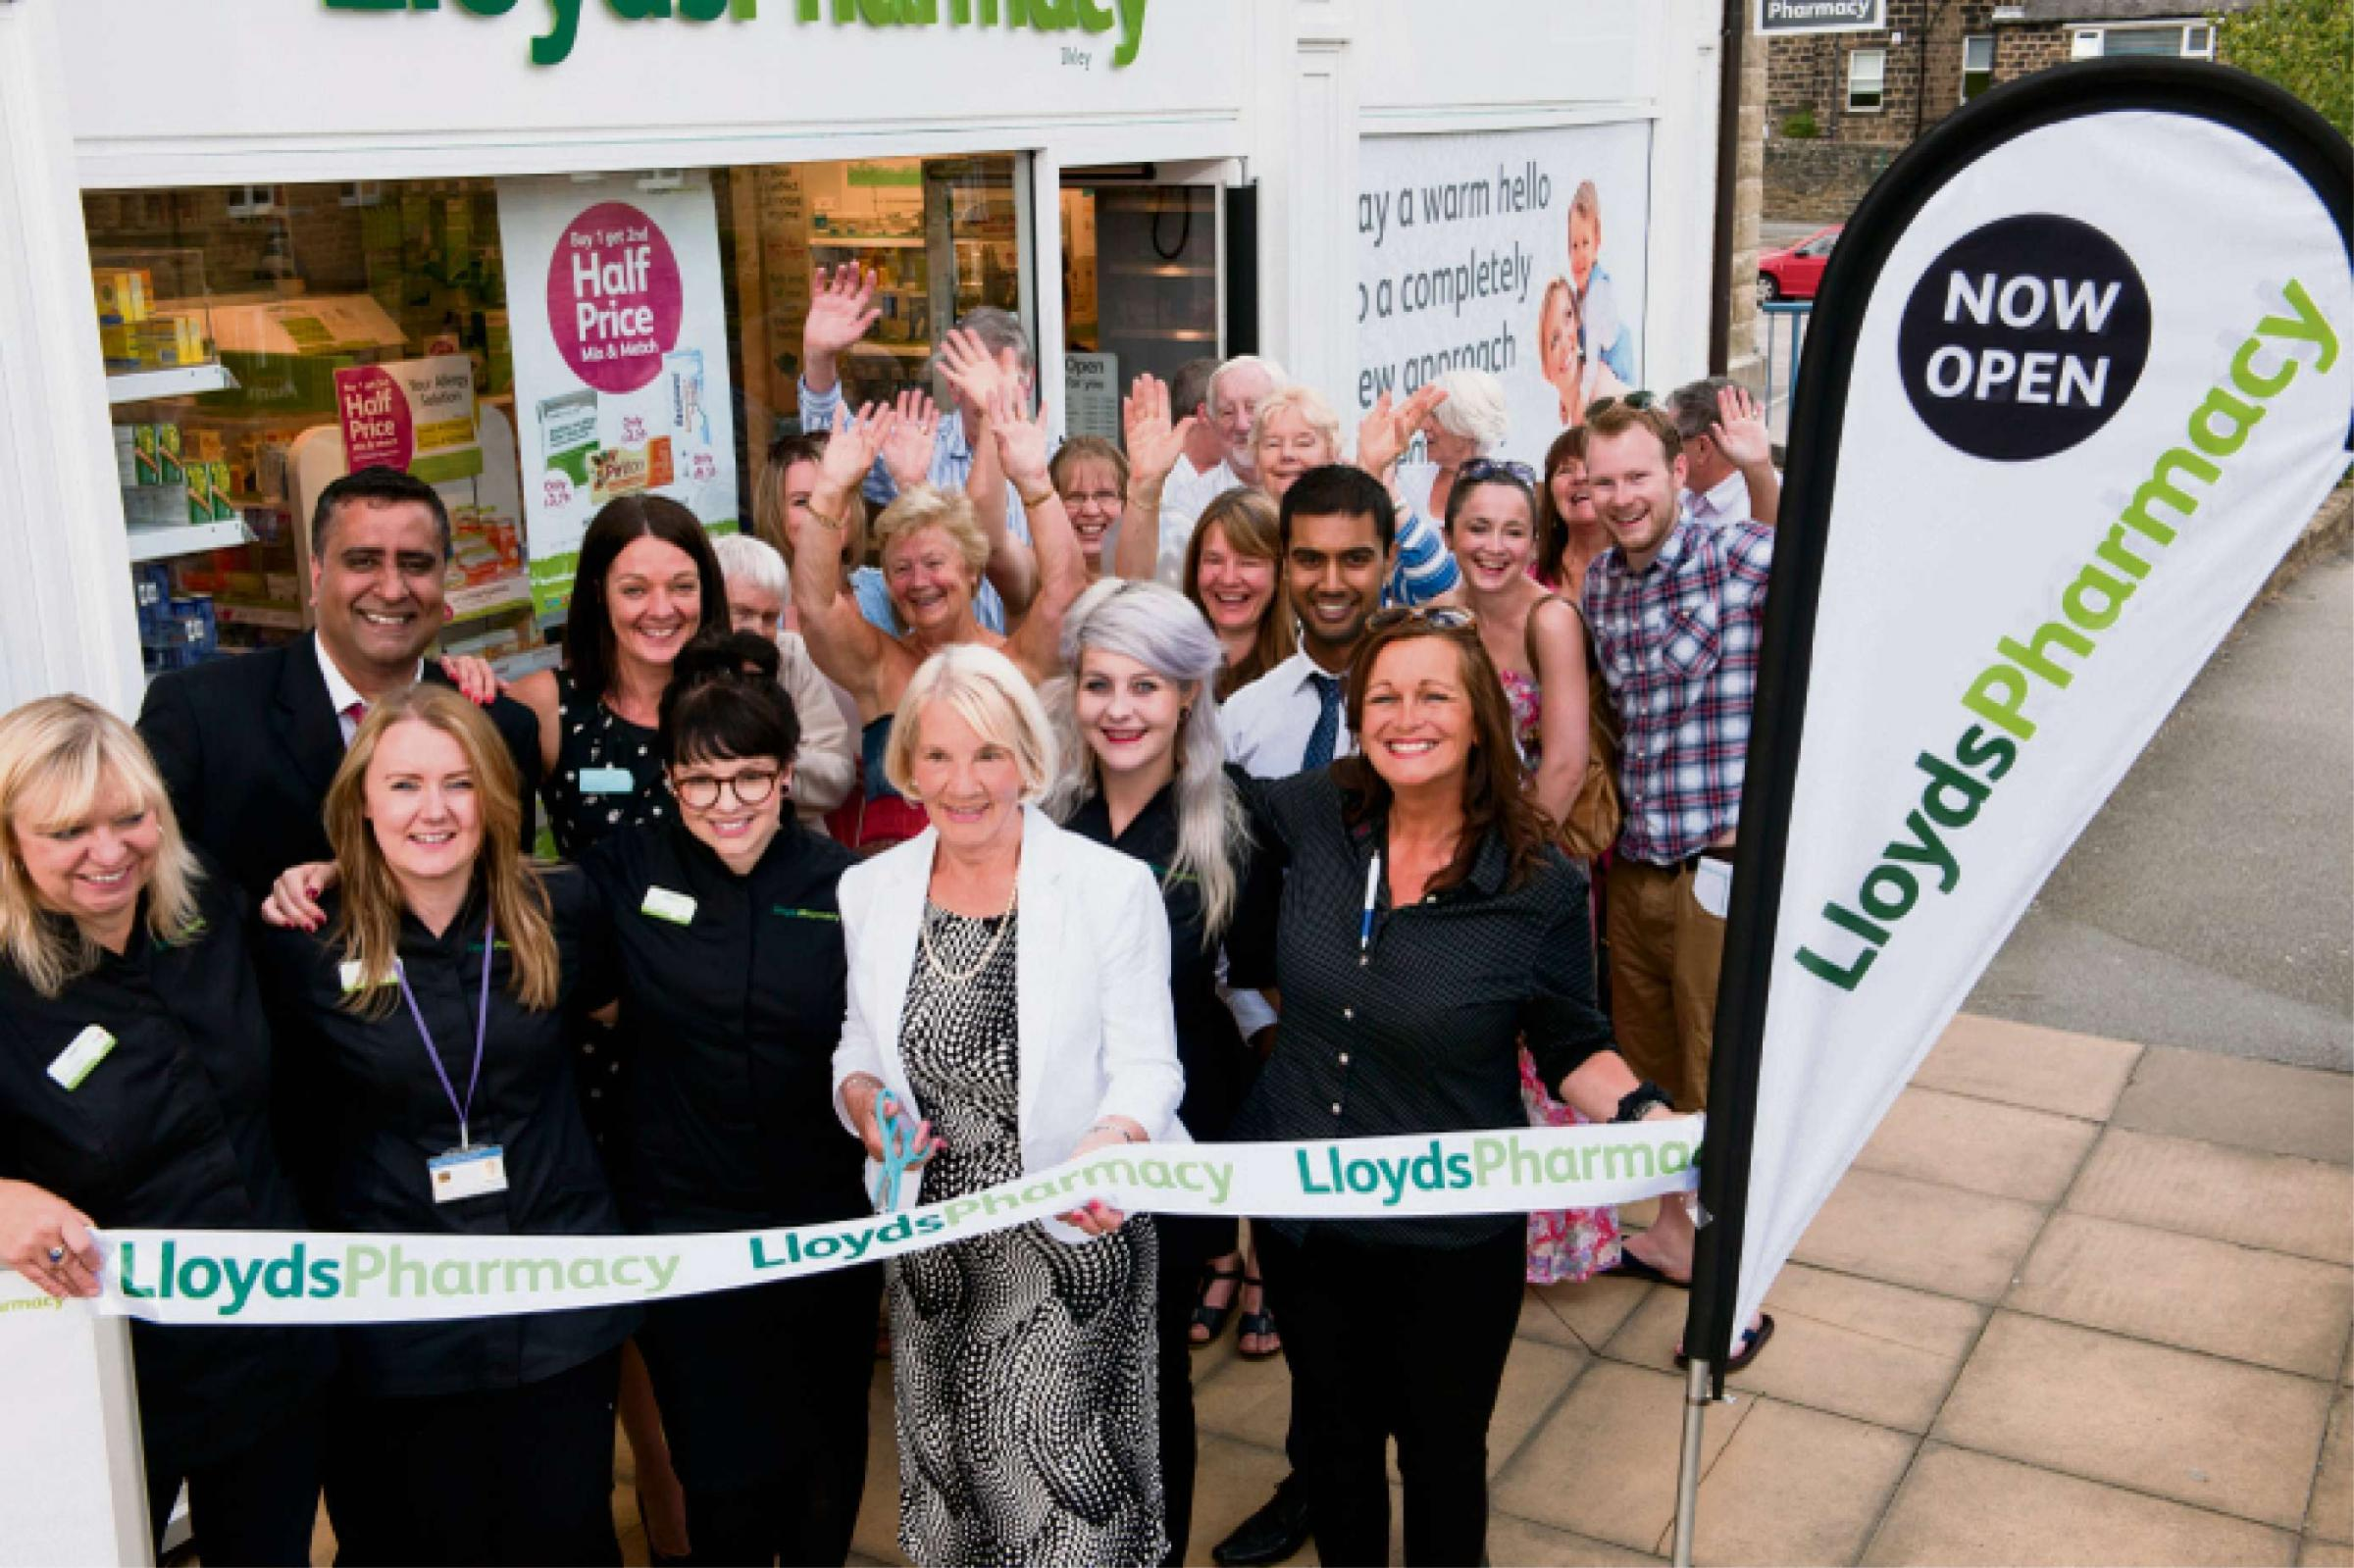 At the cutting edge of health: Mary Hume (centre) cuts the ribbon with pharmacy manager Chico Vyas (second from left) and his team applauding.